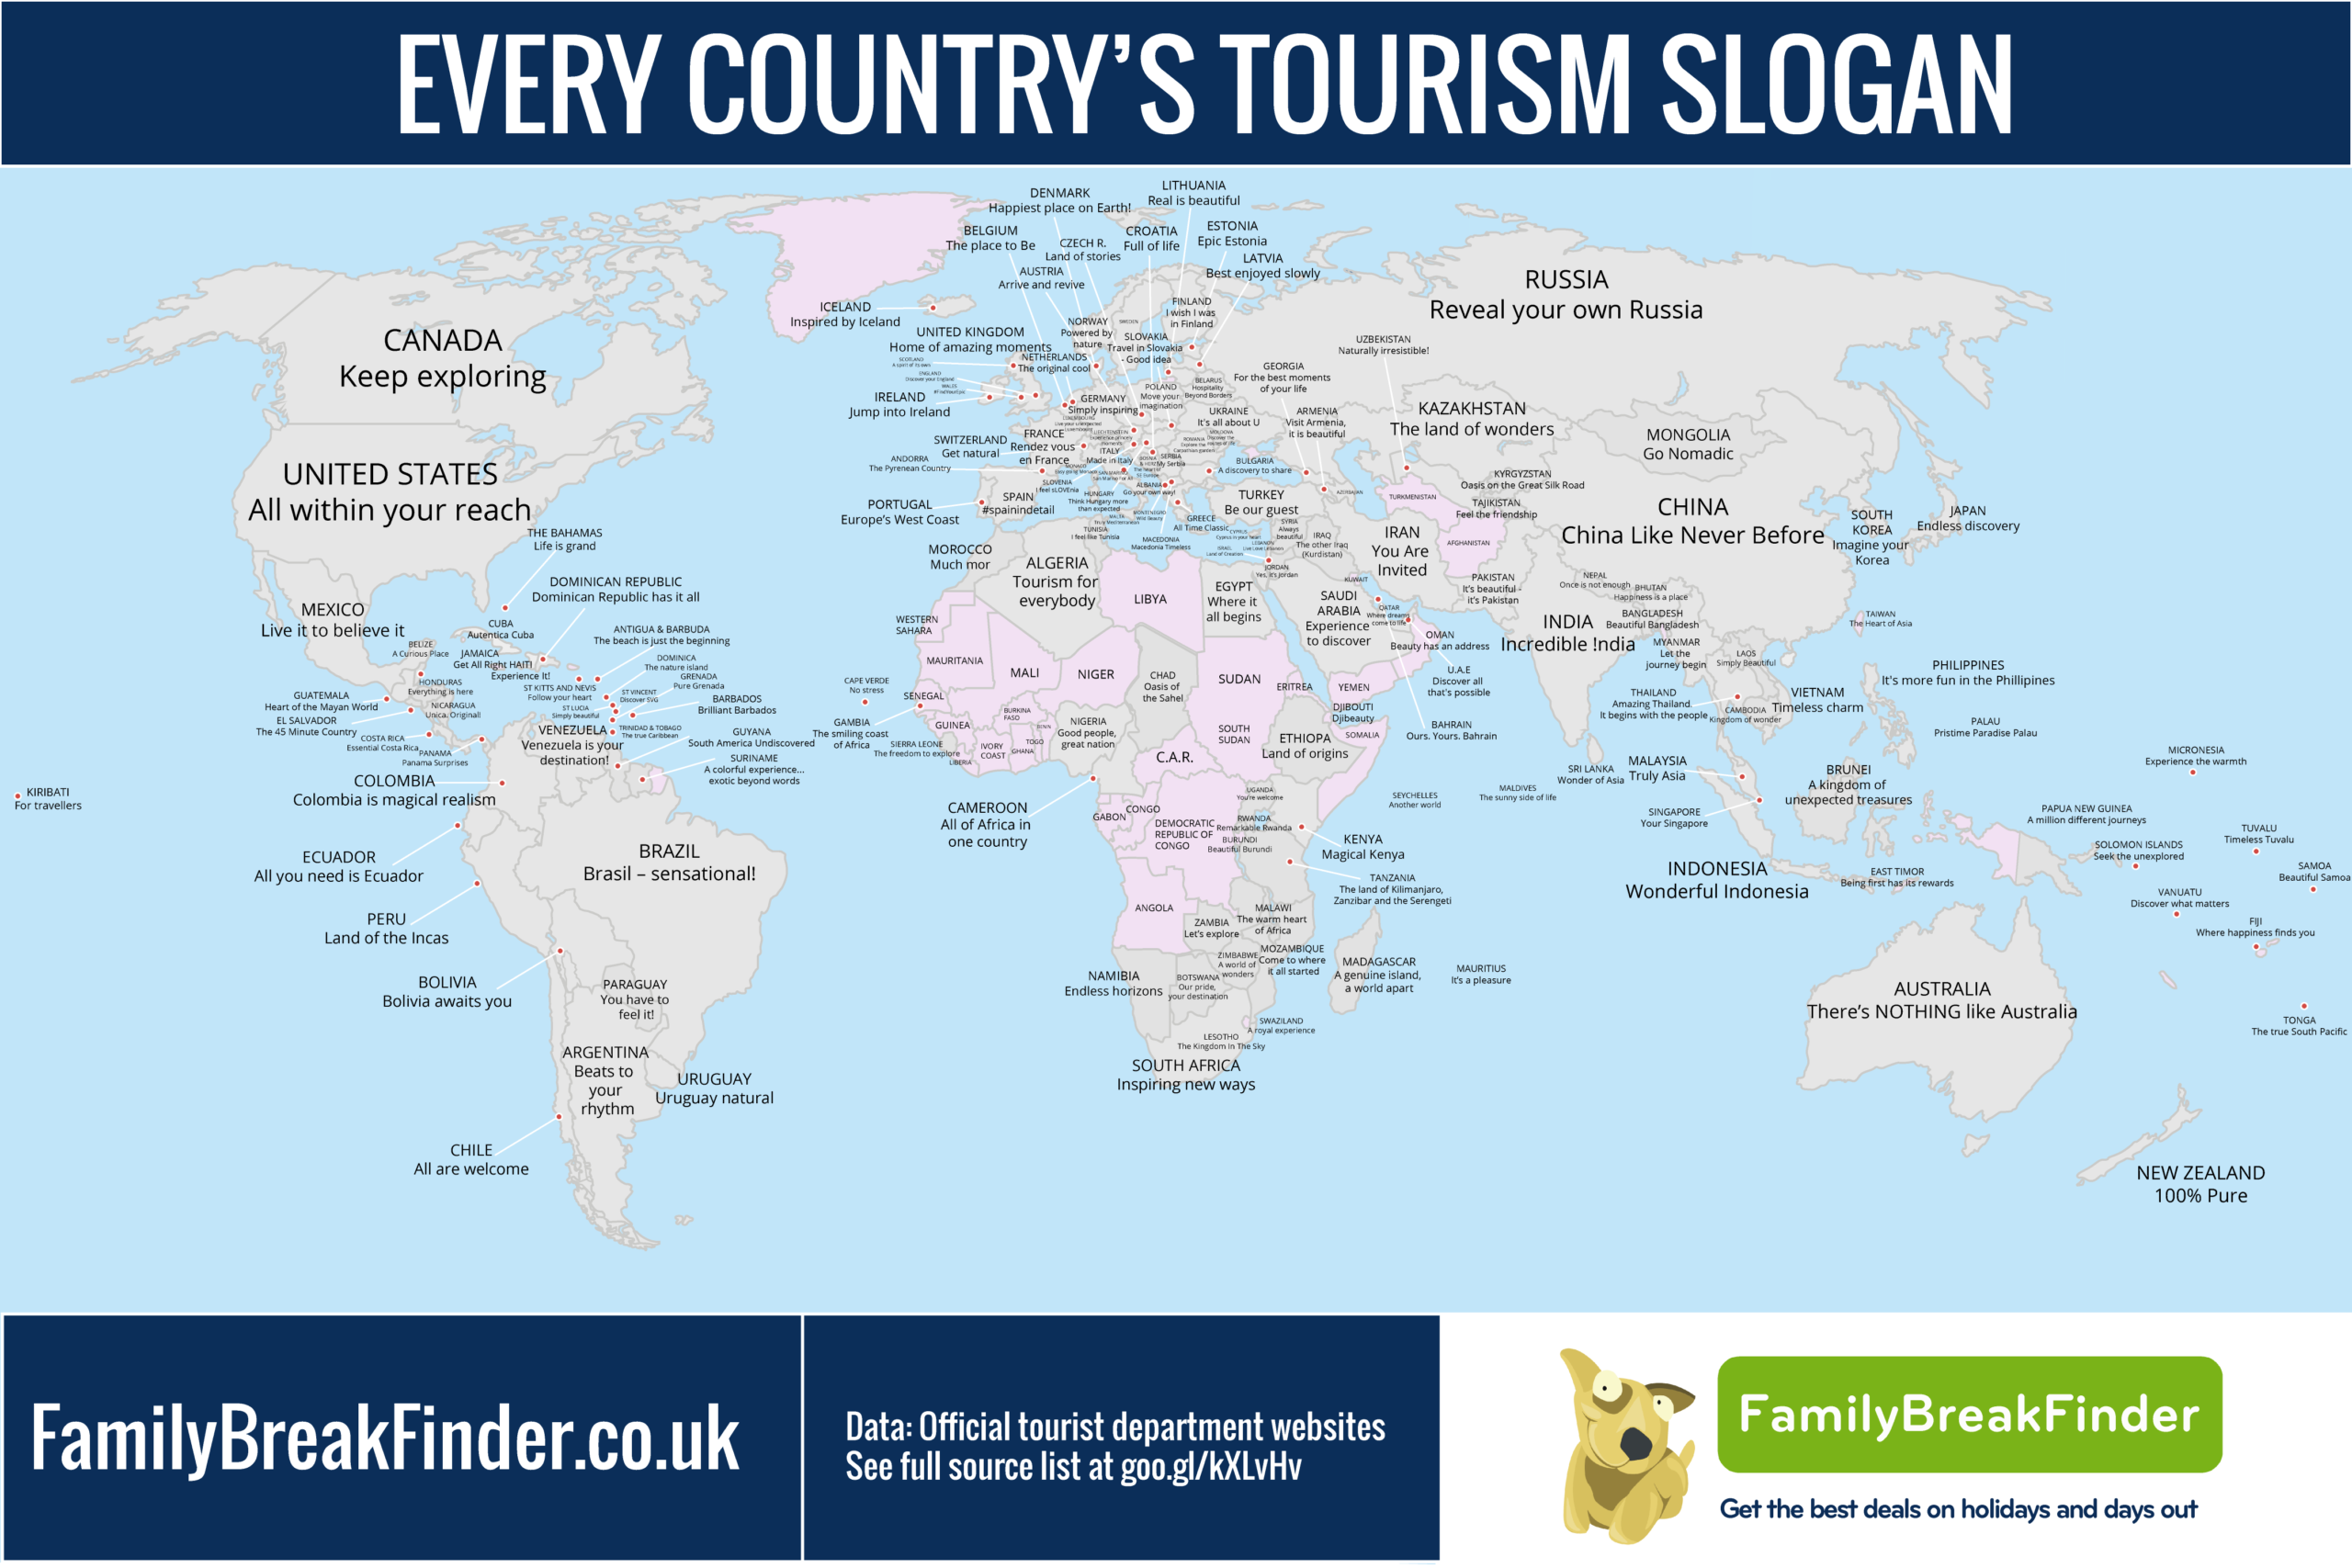 A Map Of Every Country's Tourism Slogan